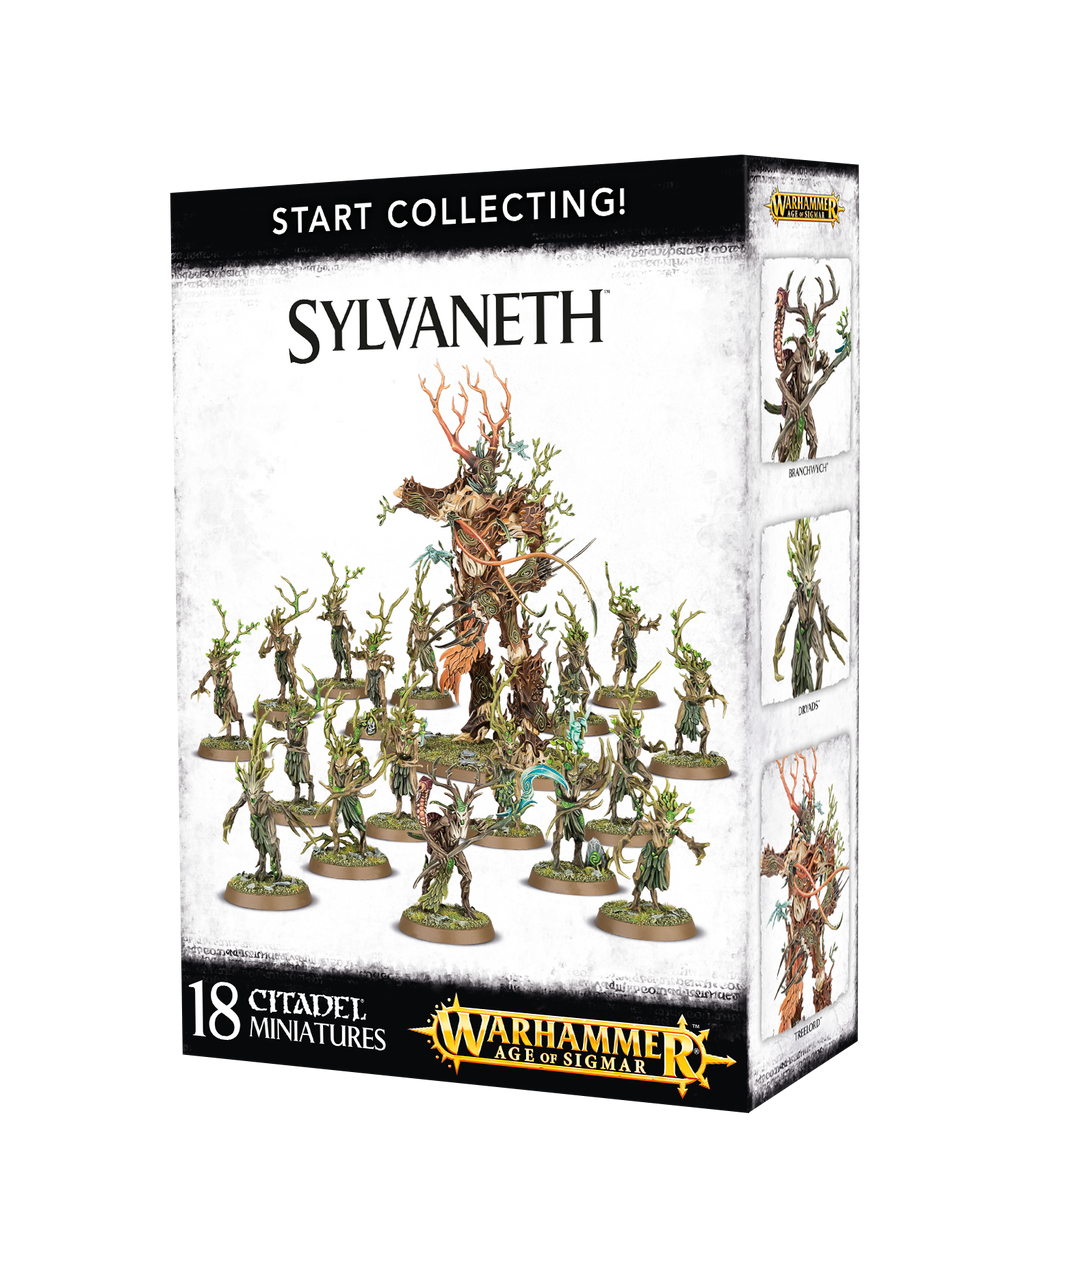 GW70-92  START COLLECTING! SYLVANETH